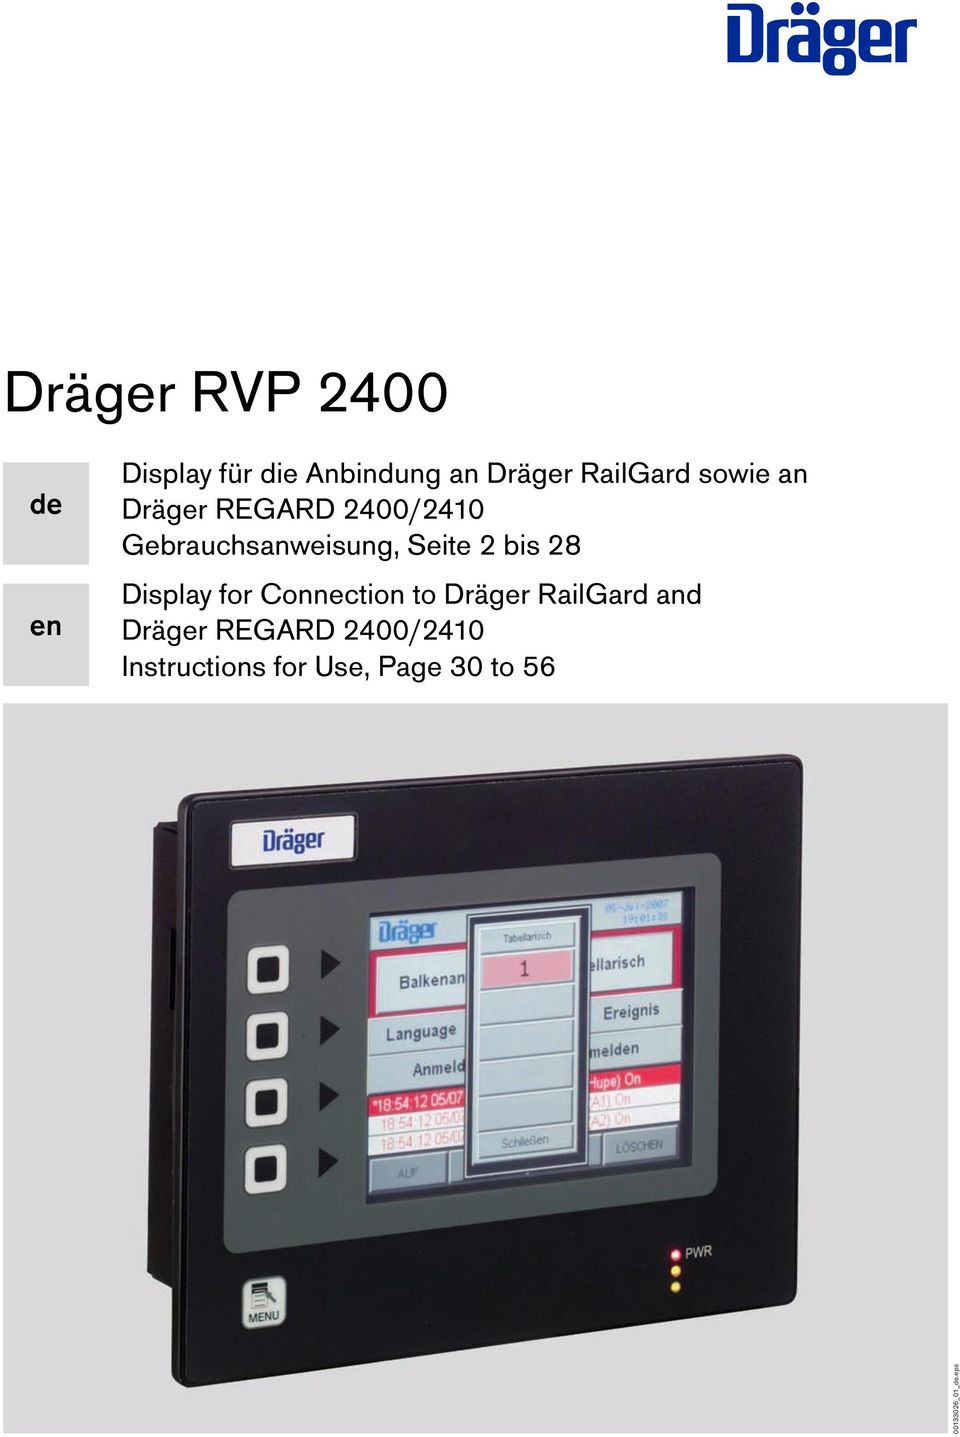 Seite 2 bis 28 Display for Connection to Dräger RailGard and